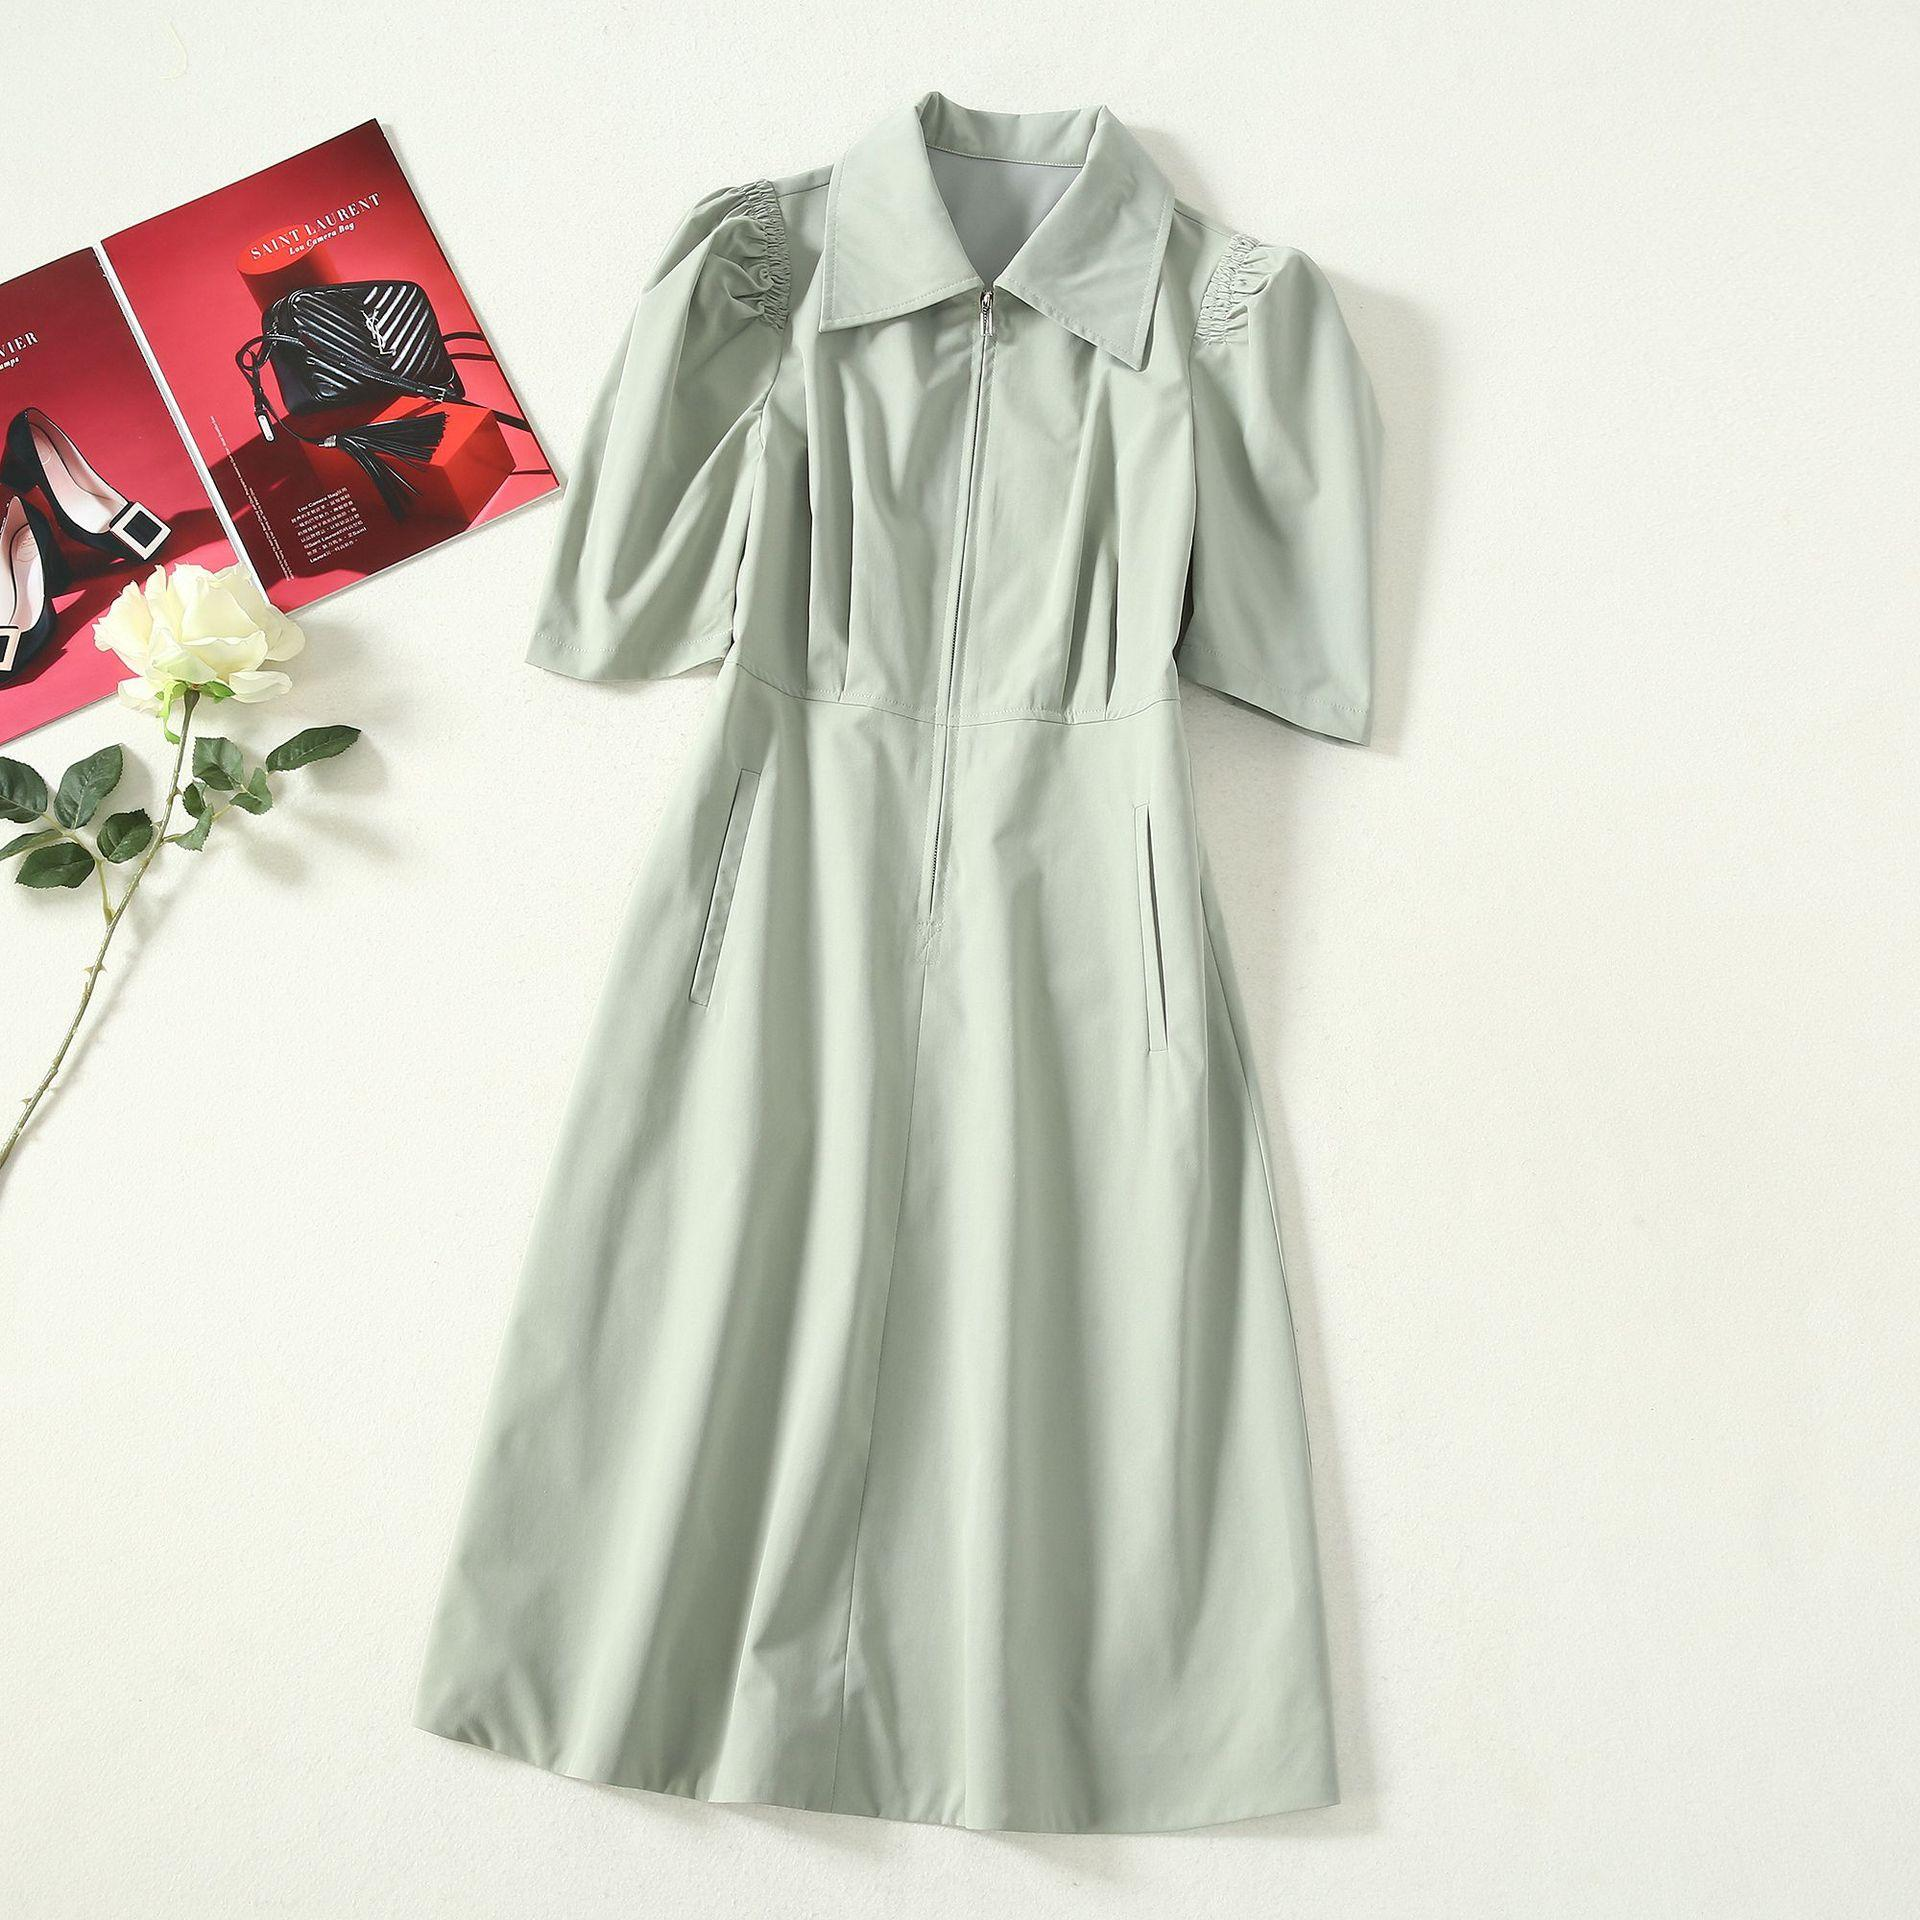 2020 Spring Summer Short Sleeve Lapel Neck Green Pure Color Knee-Length Dress Luxury Runway Dresses A052306A2